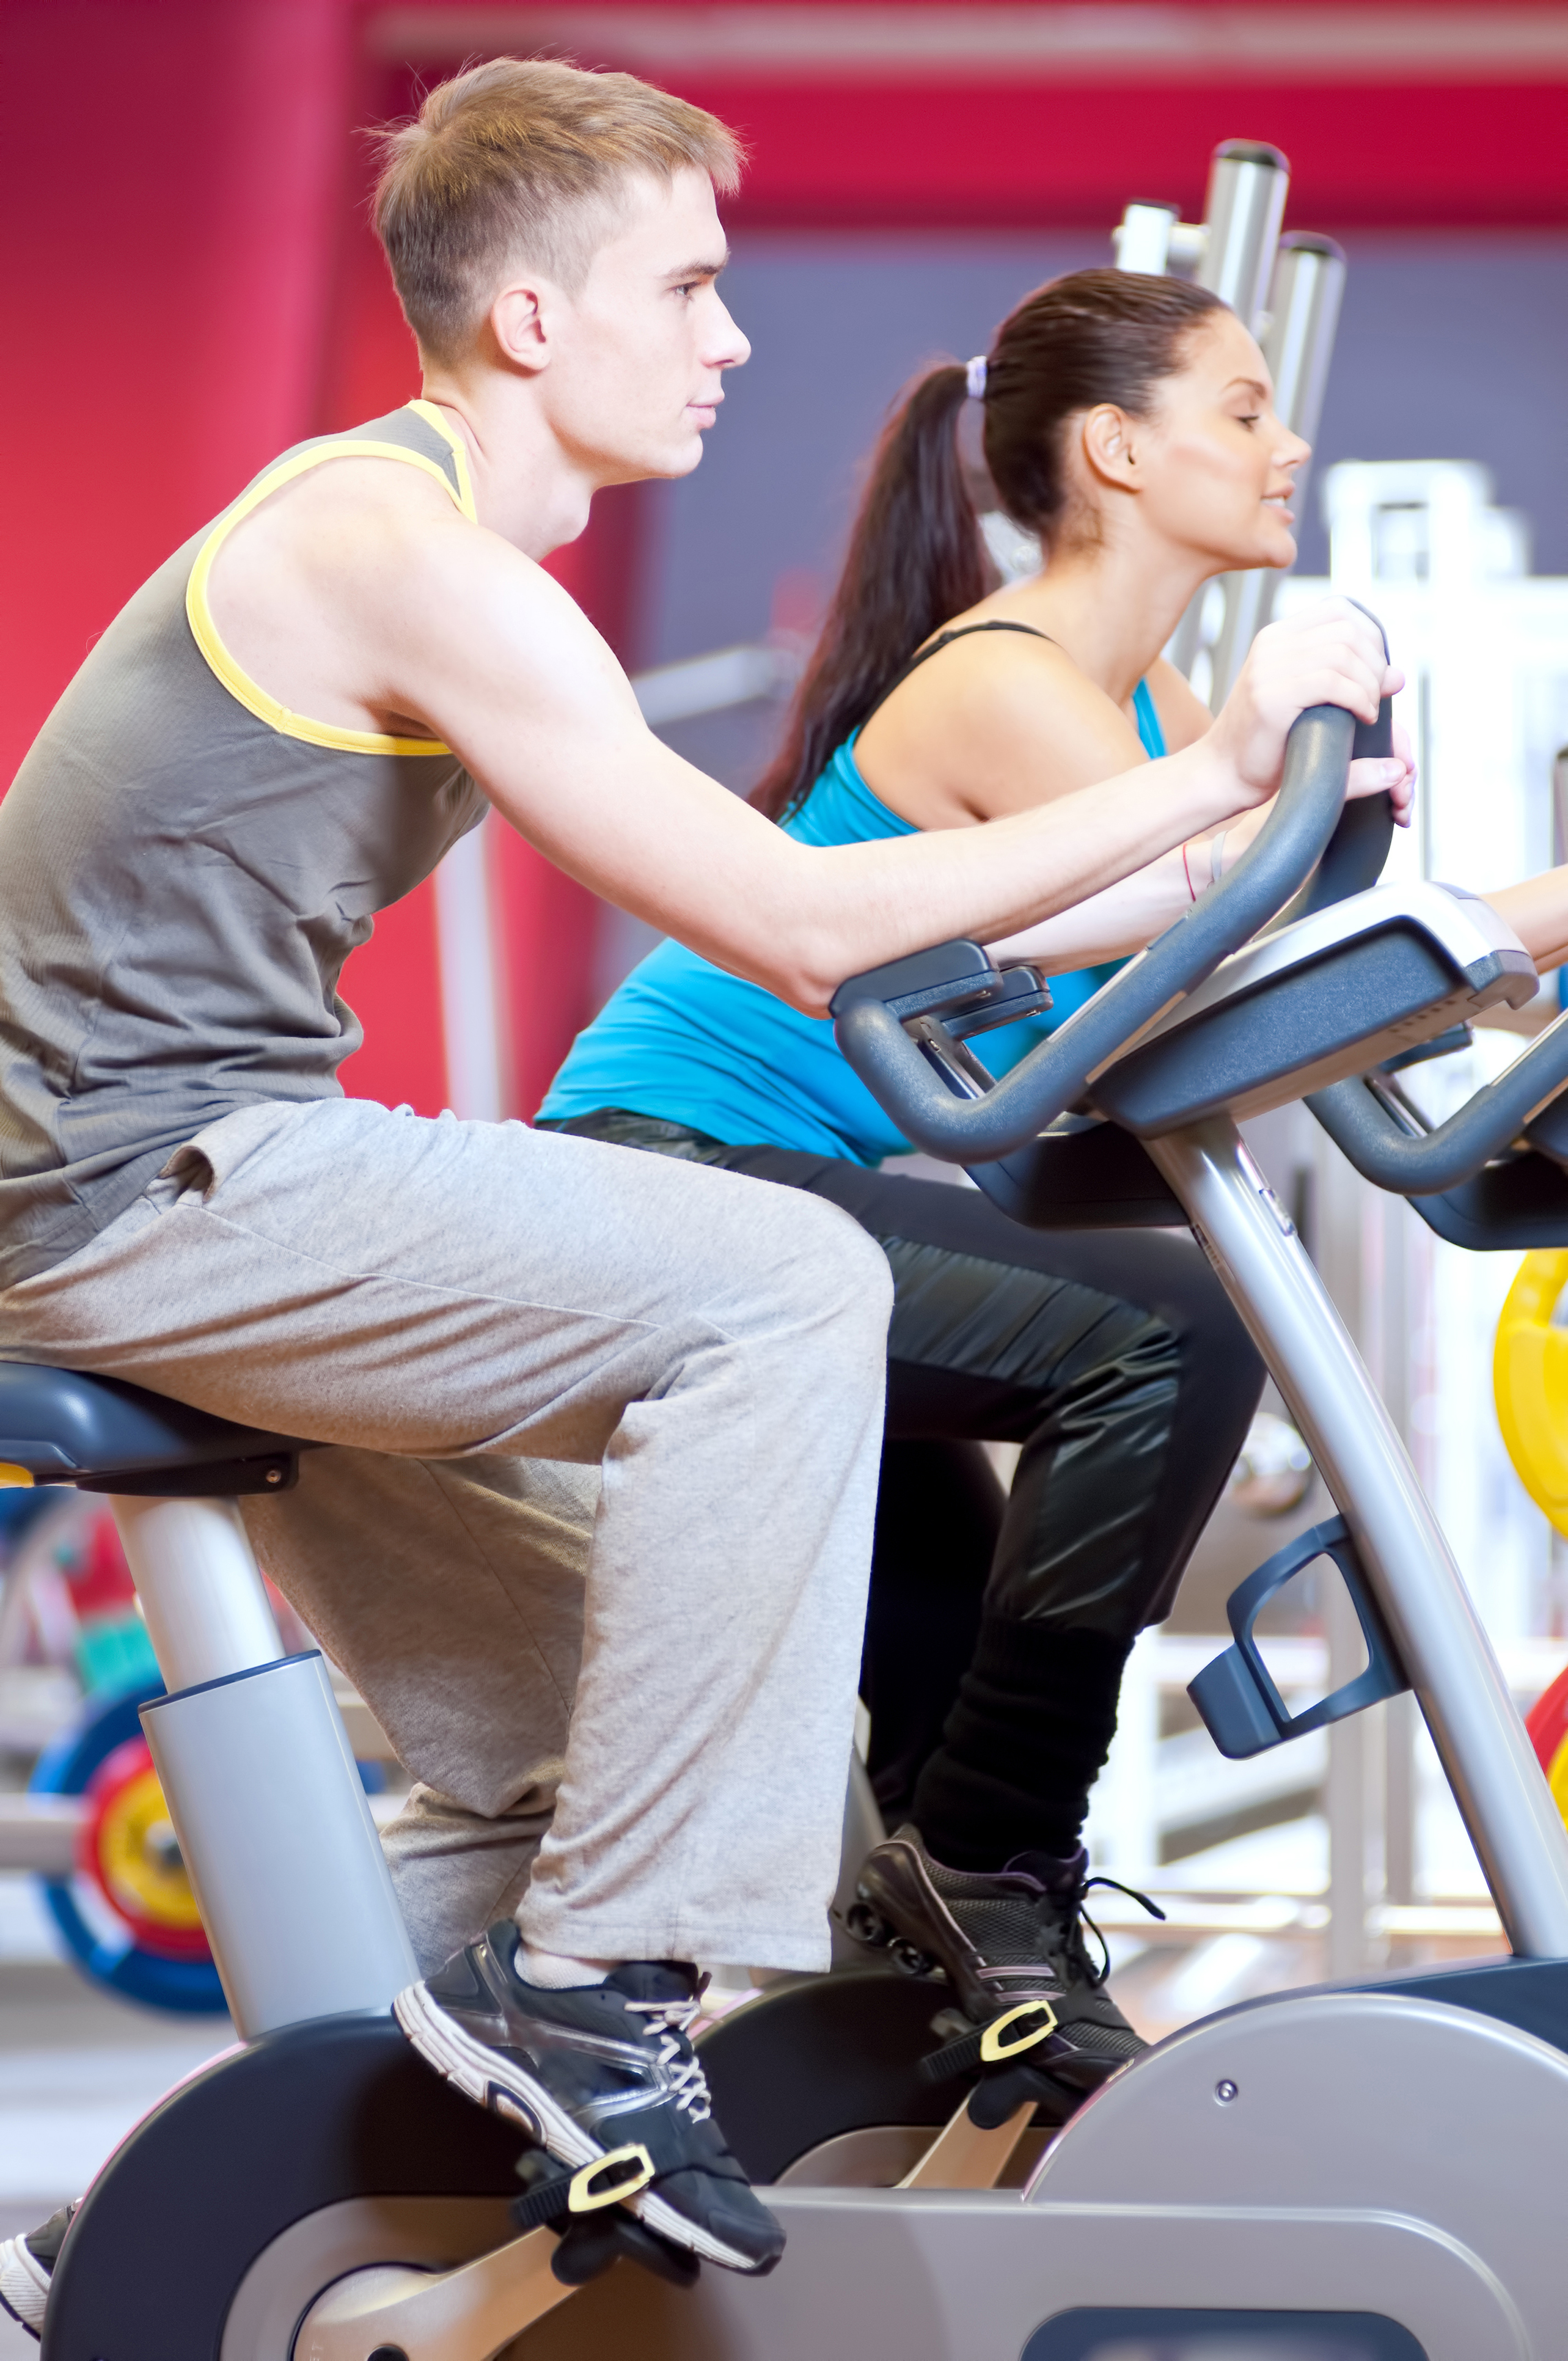 two college students on treadmills